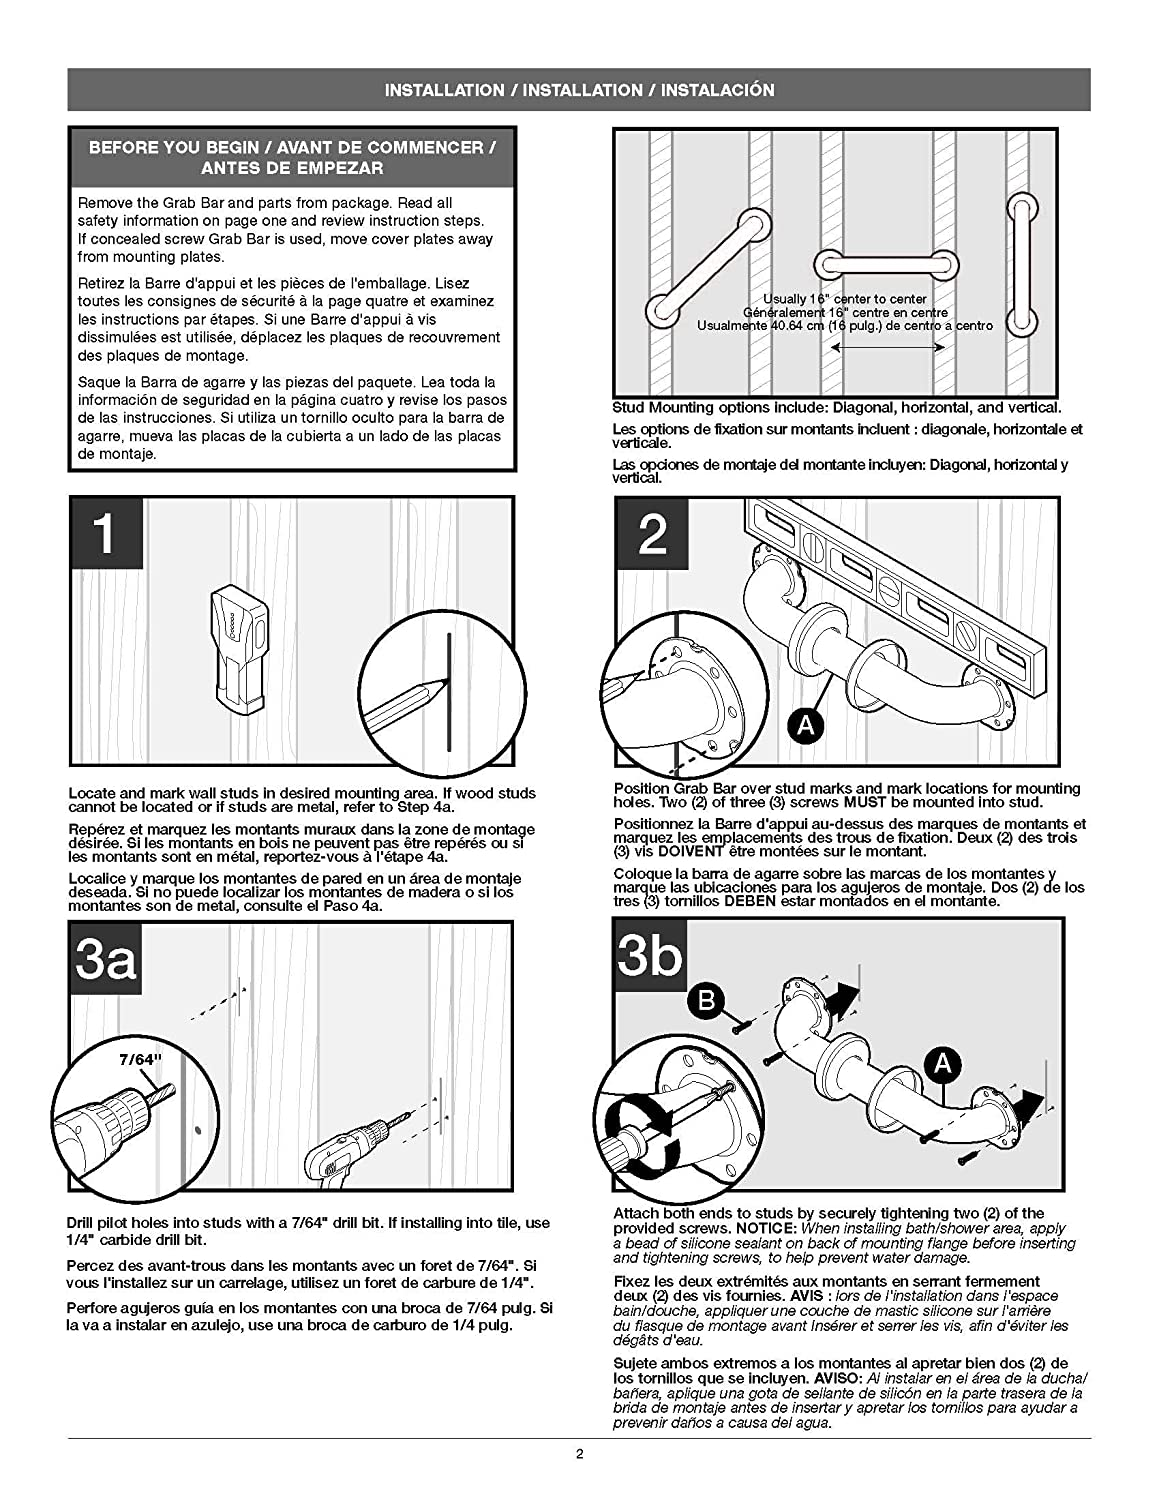 Amazon.com: DELTA DAS5316-SN Bathroom Shower Safety Grab Bar with ...